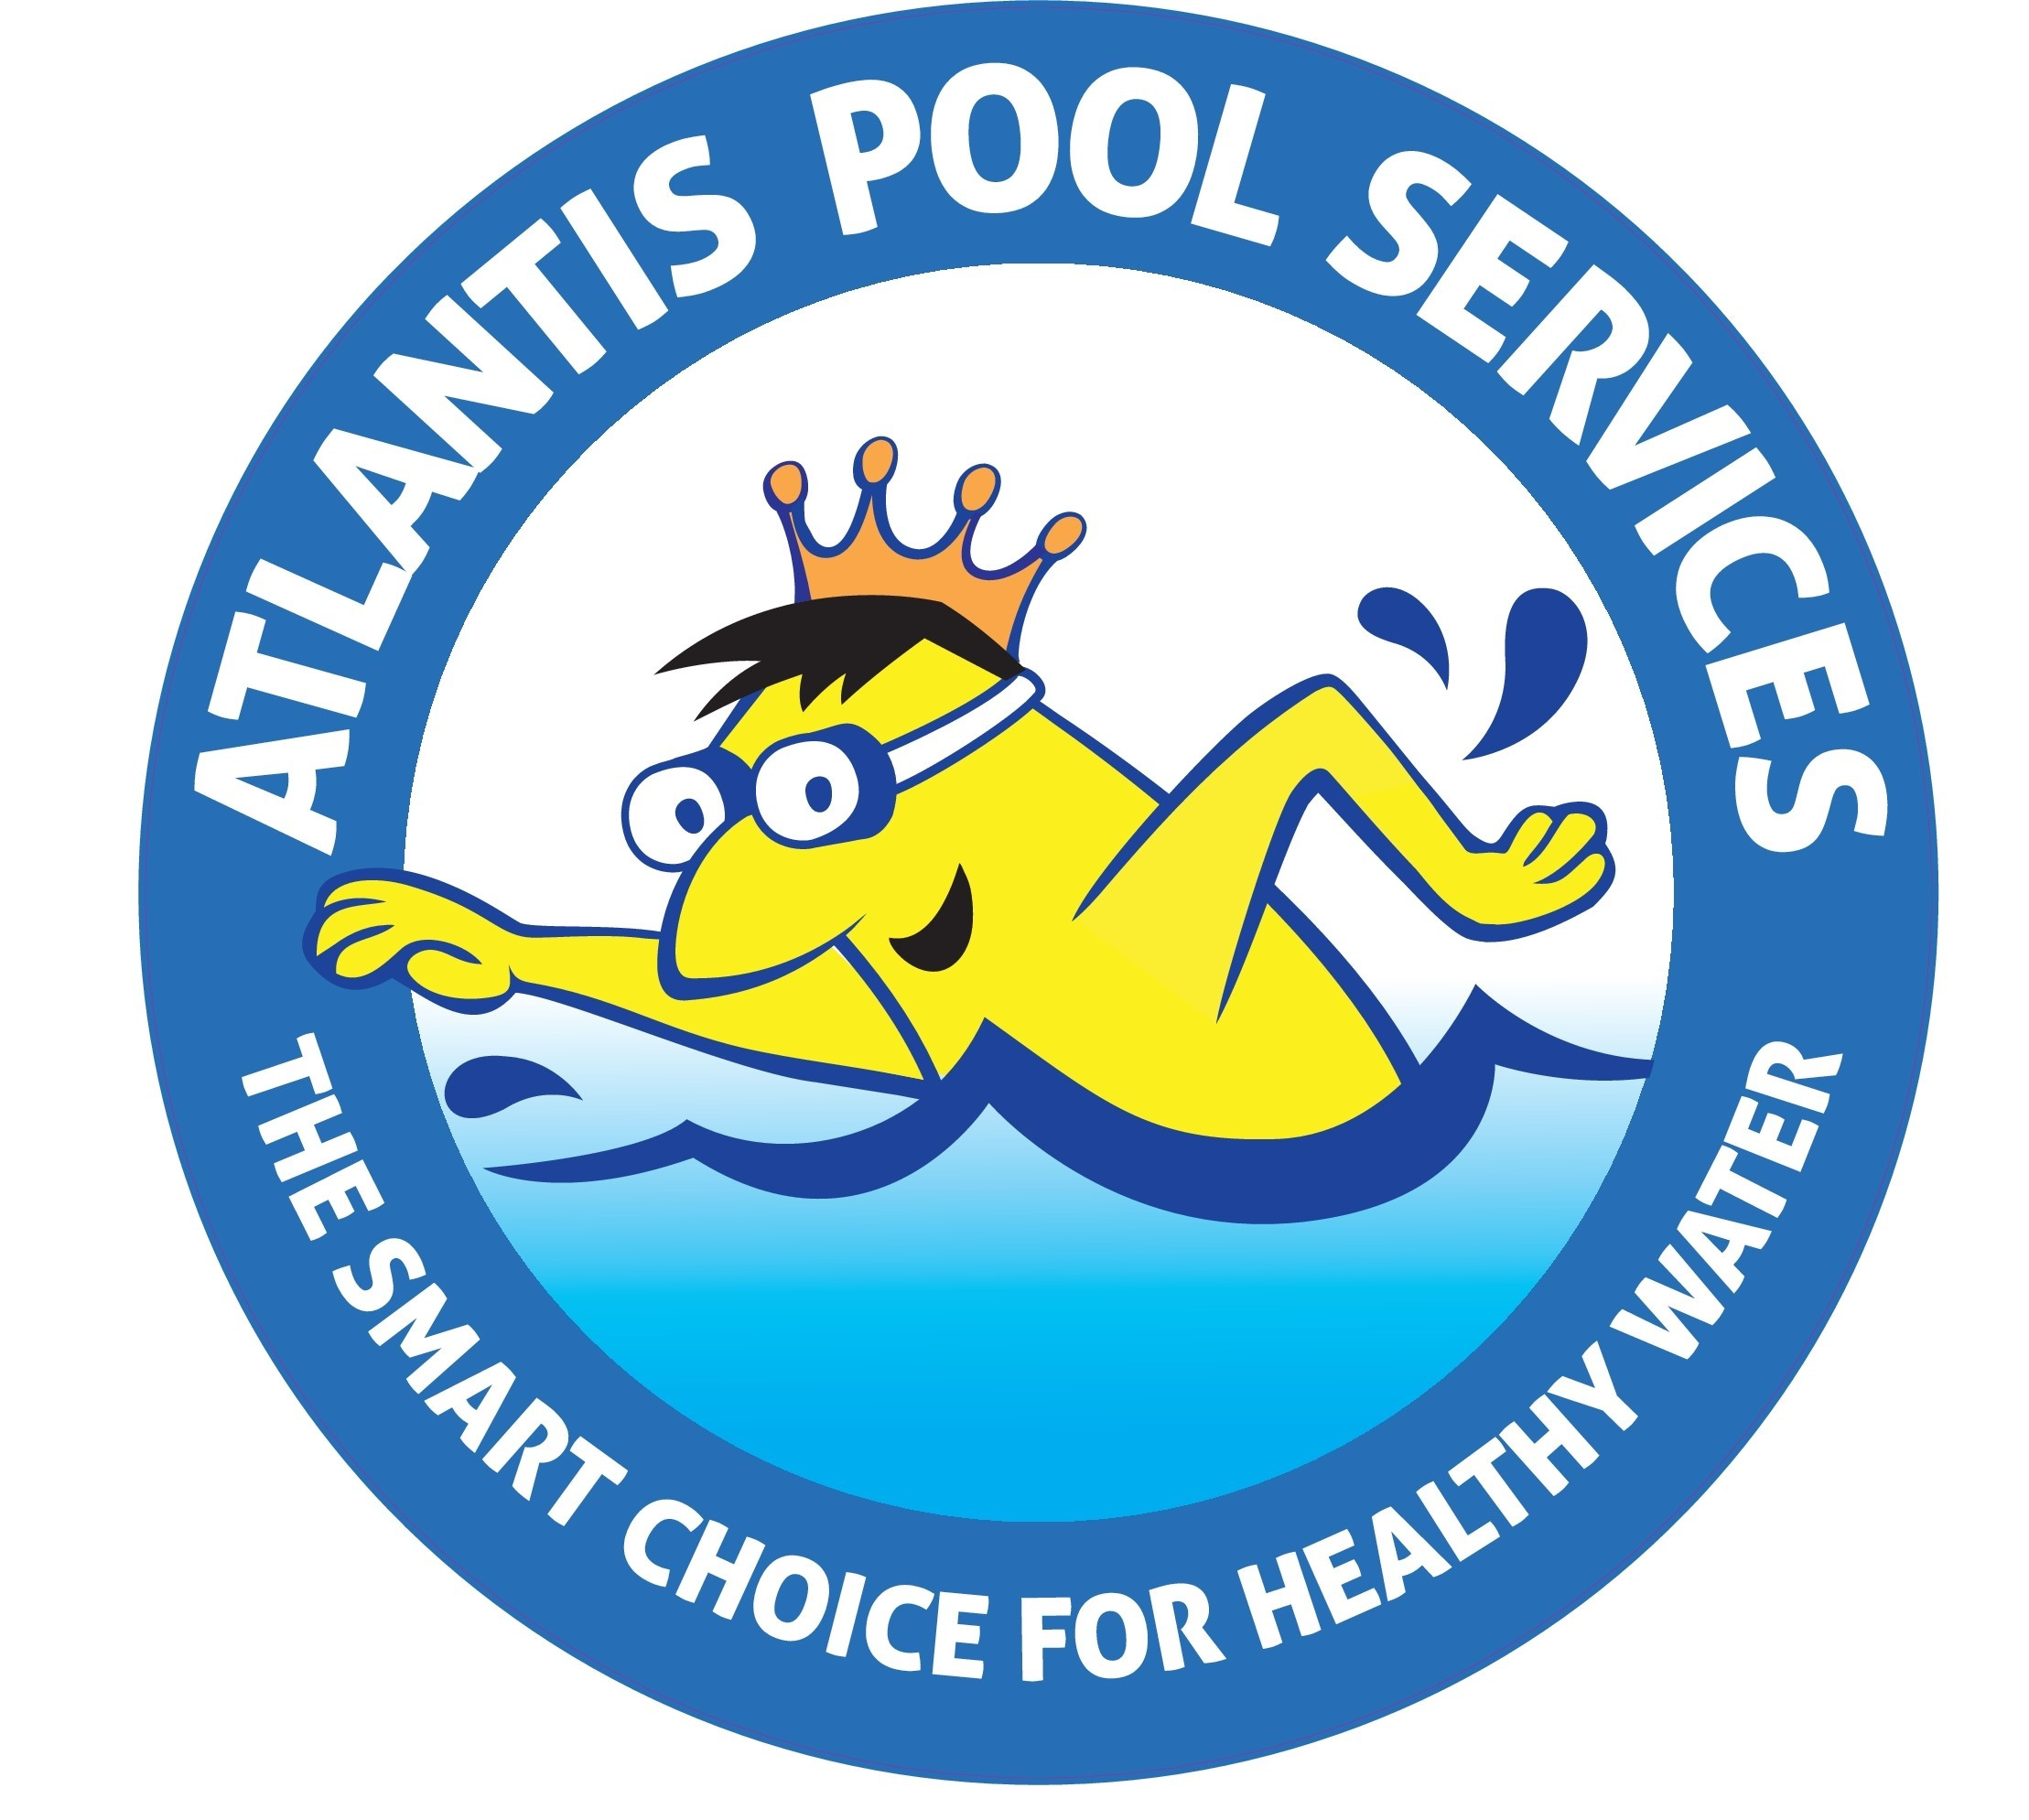 Atlantis Pool Shop